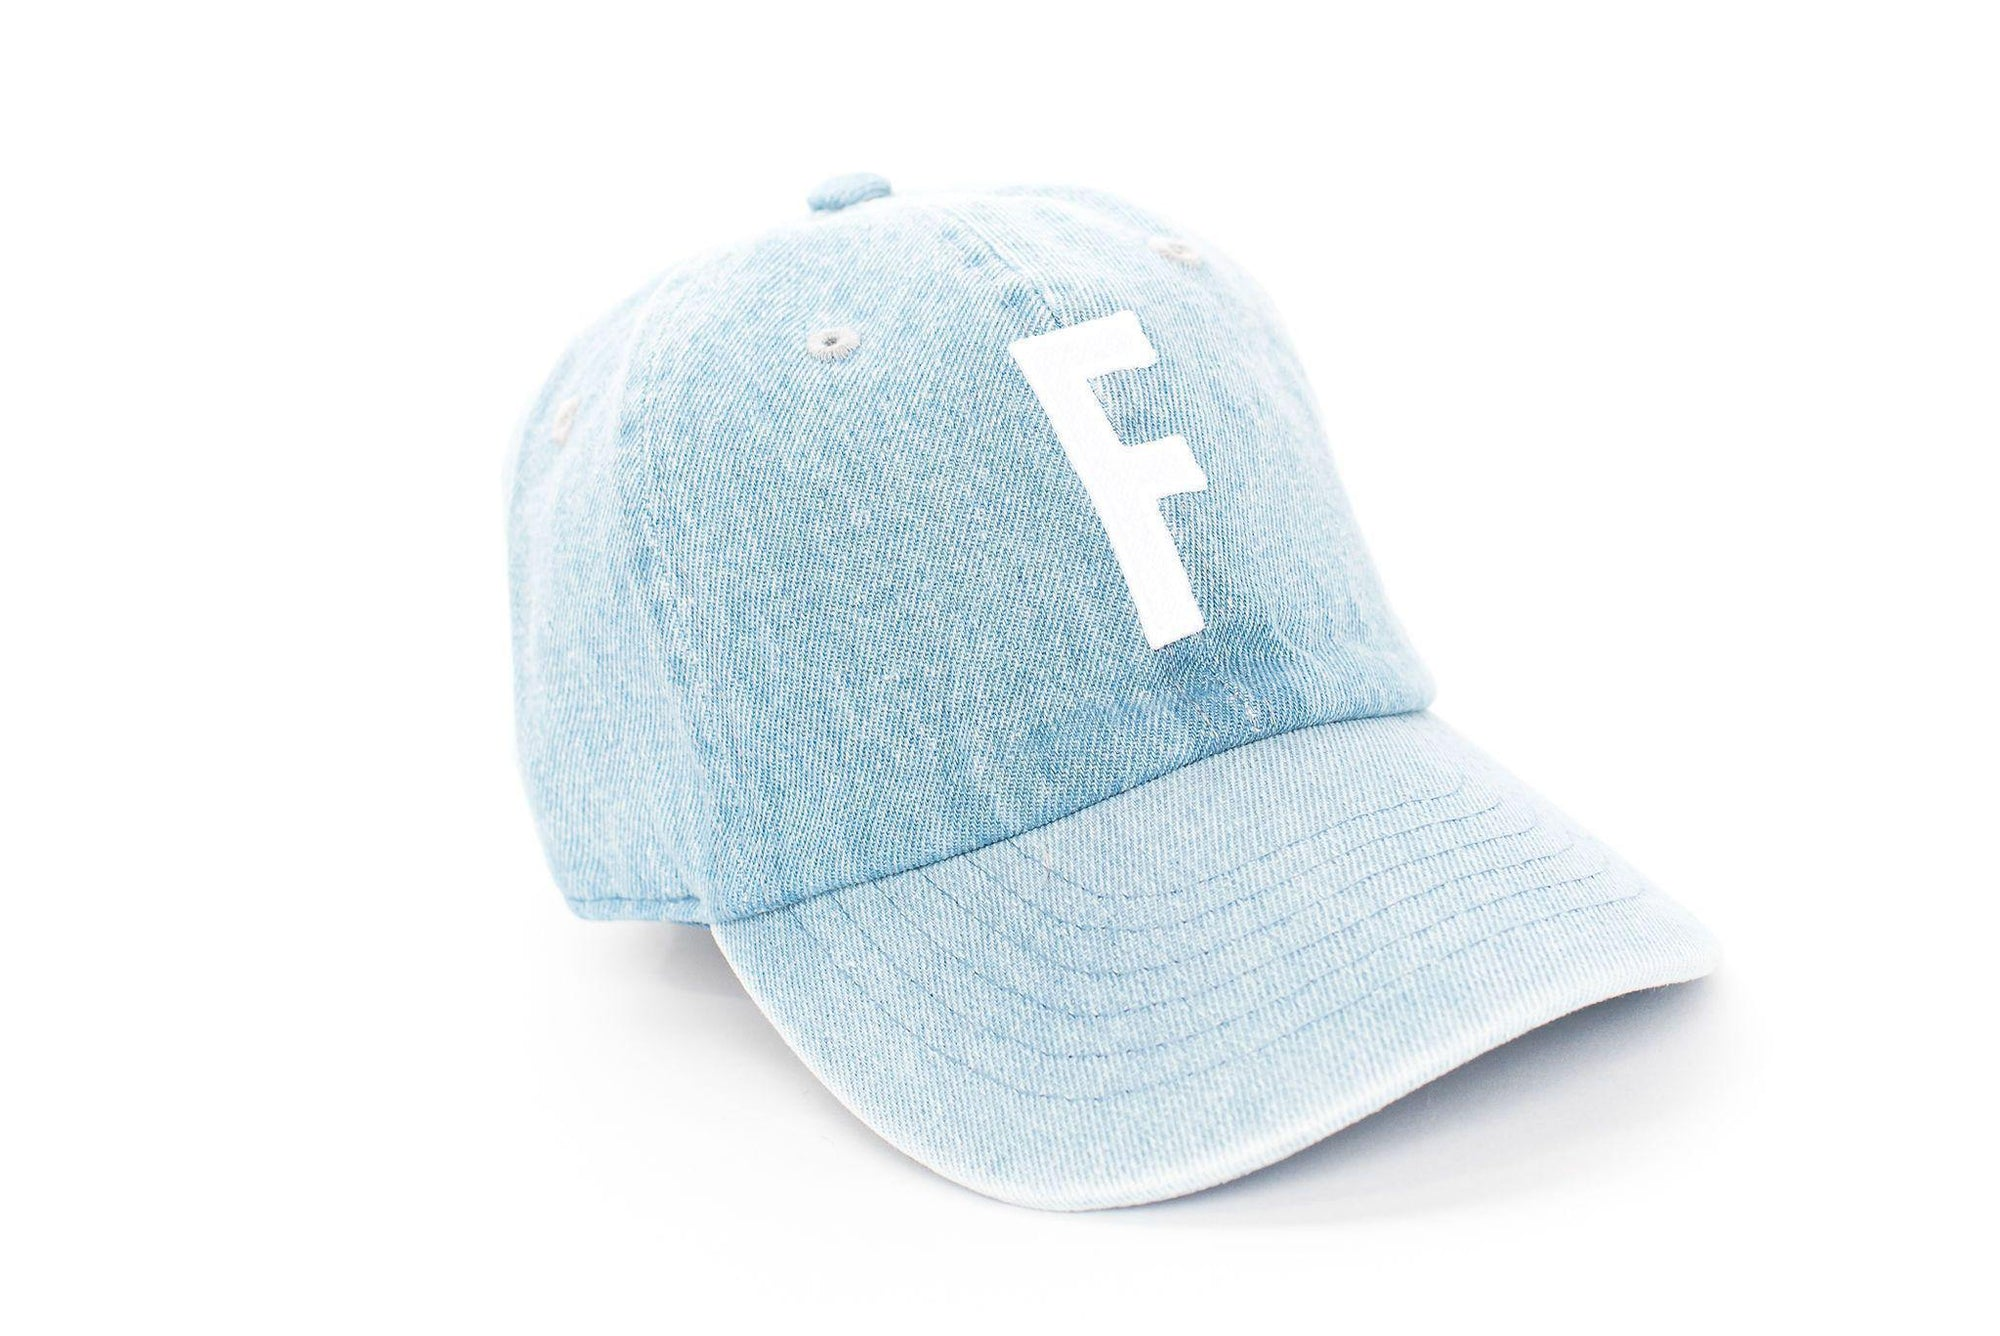 Denim Baseball Hats